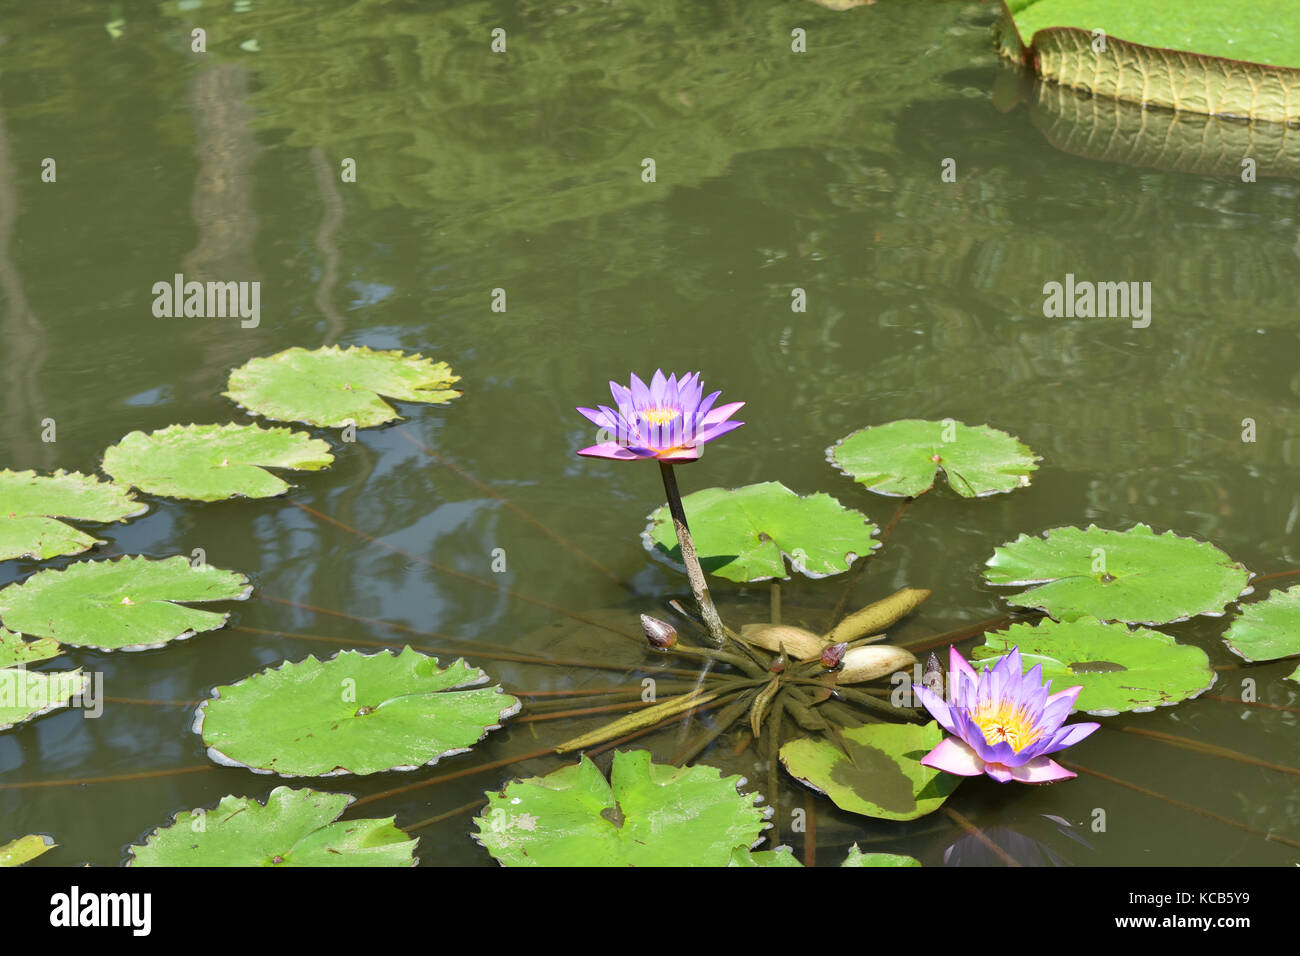 Sacred narcotic lily of the nile stock photos sacred narcotic lily stunning purple or blue lotus flower in full bloom with garden pond background stock izmirmasajfo